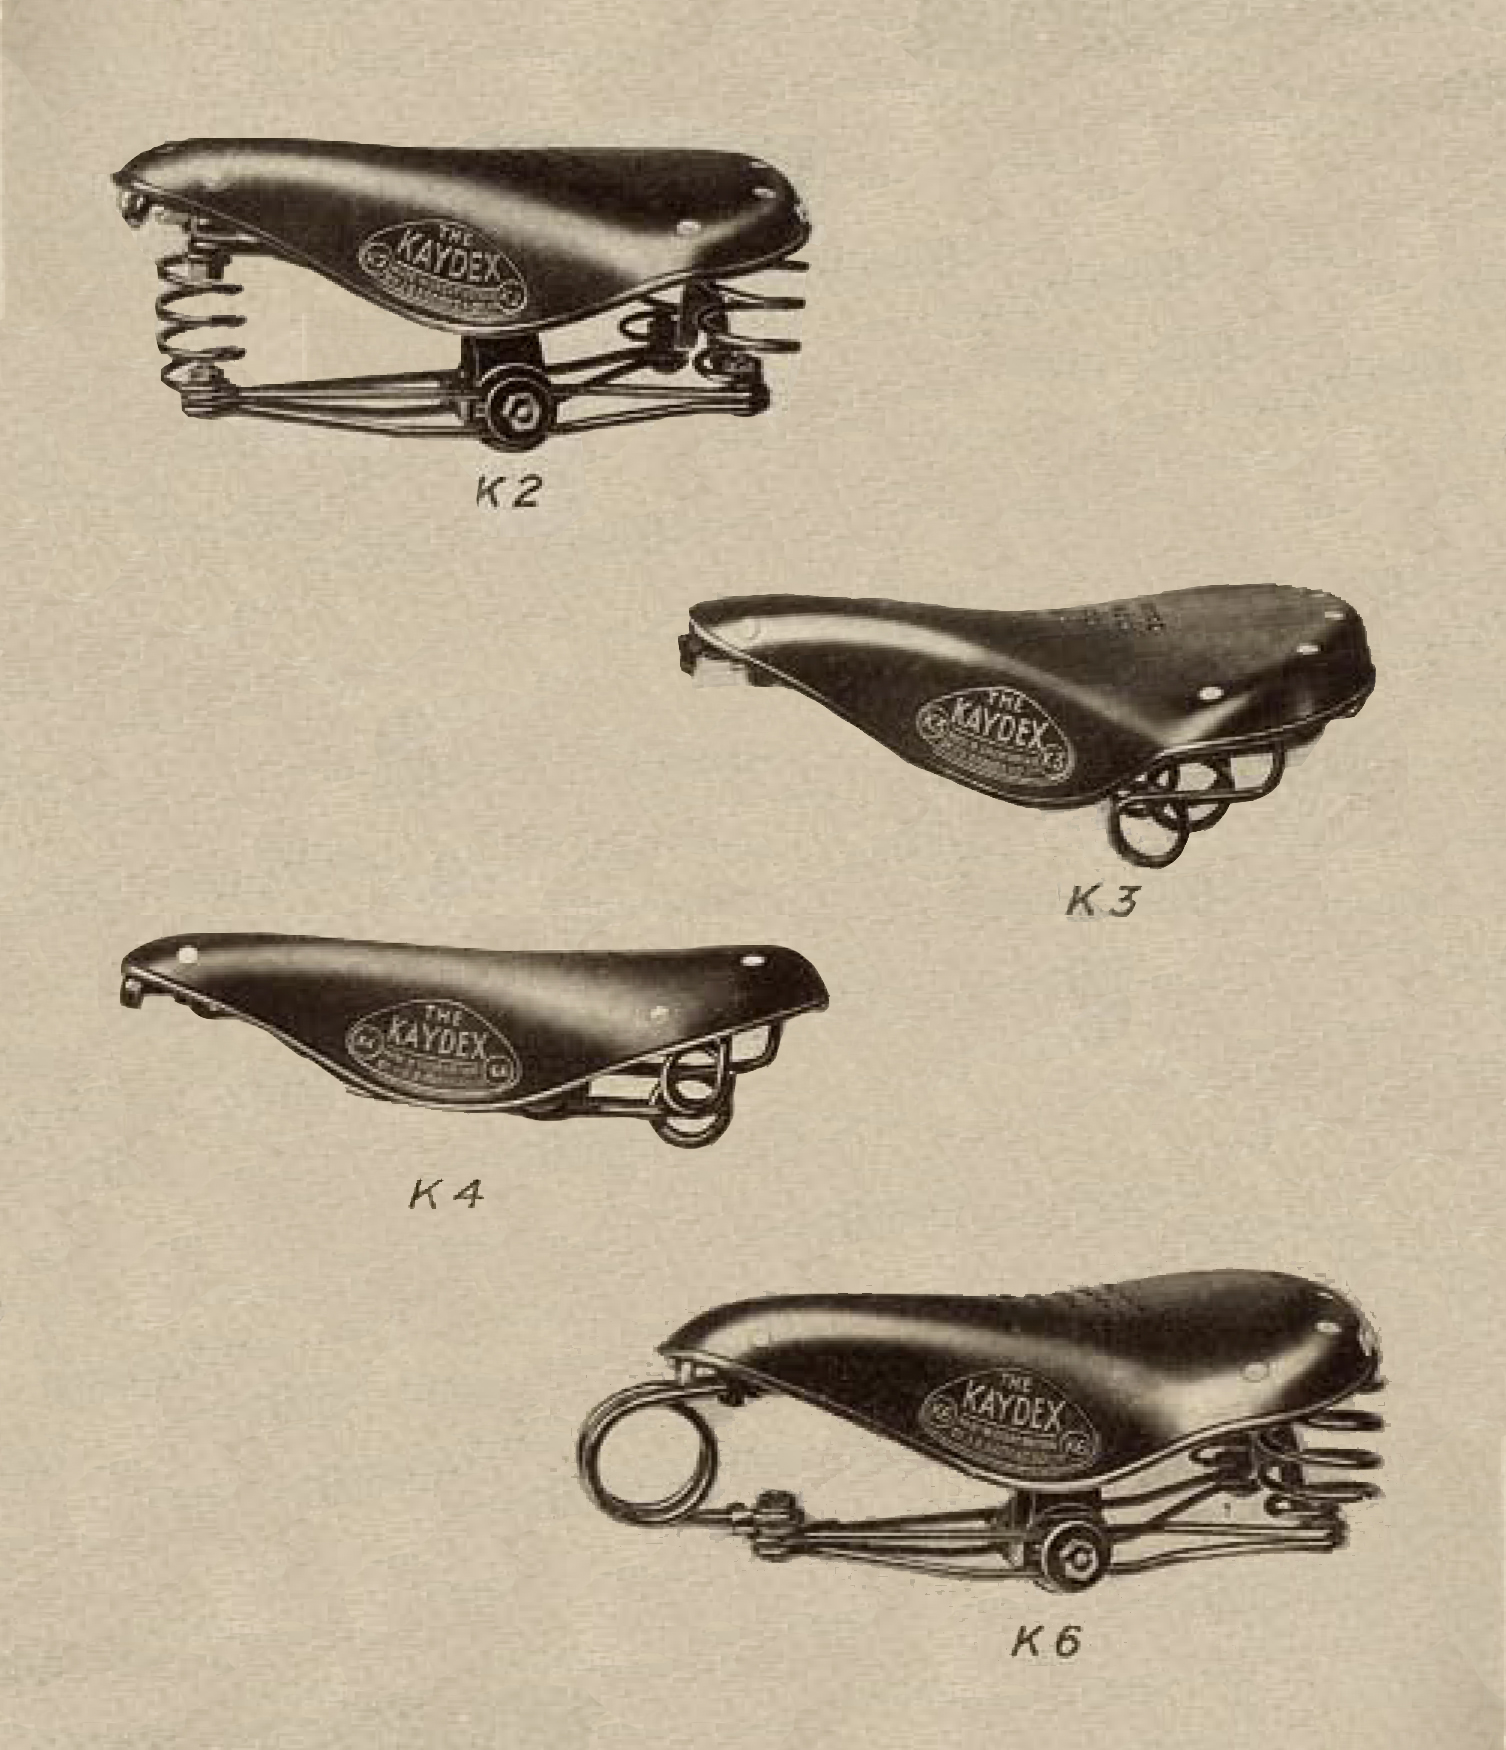 ebykr-brooks-kaydex-saddles-1933-catalog